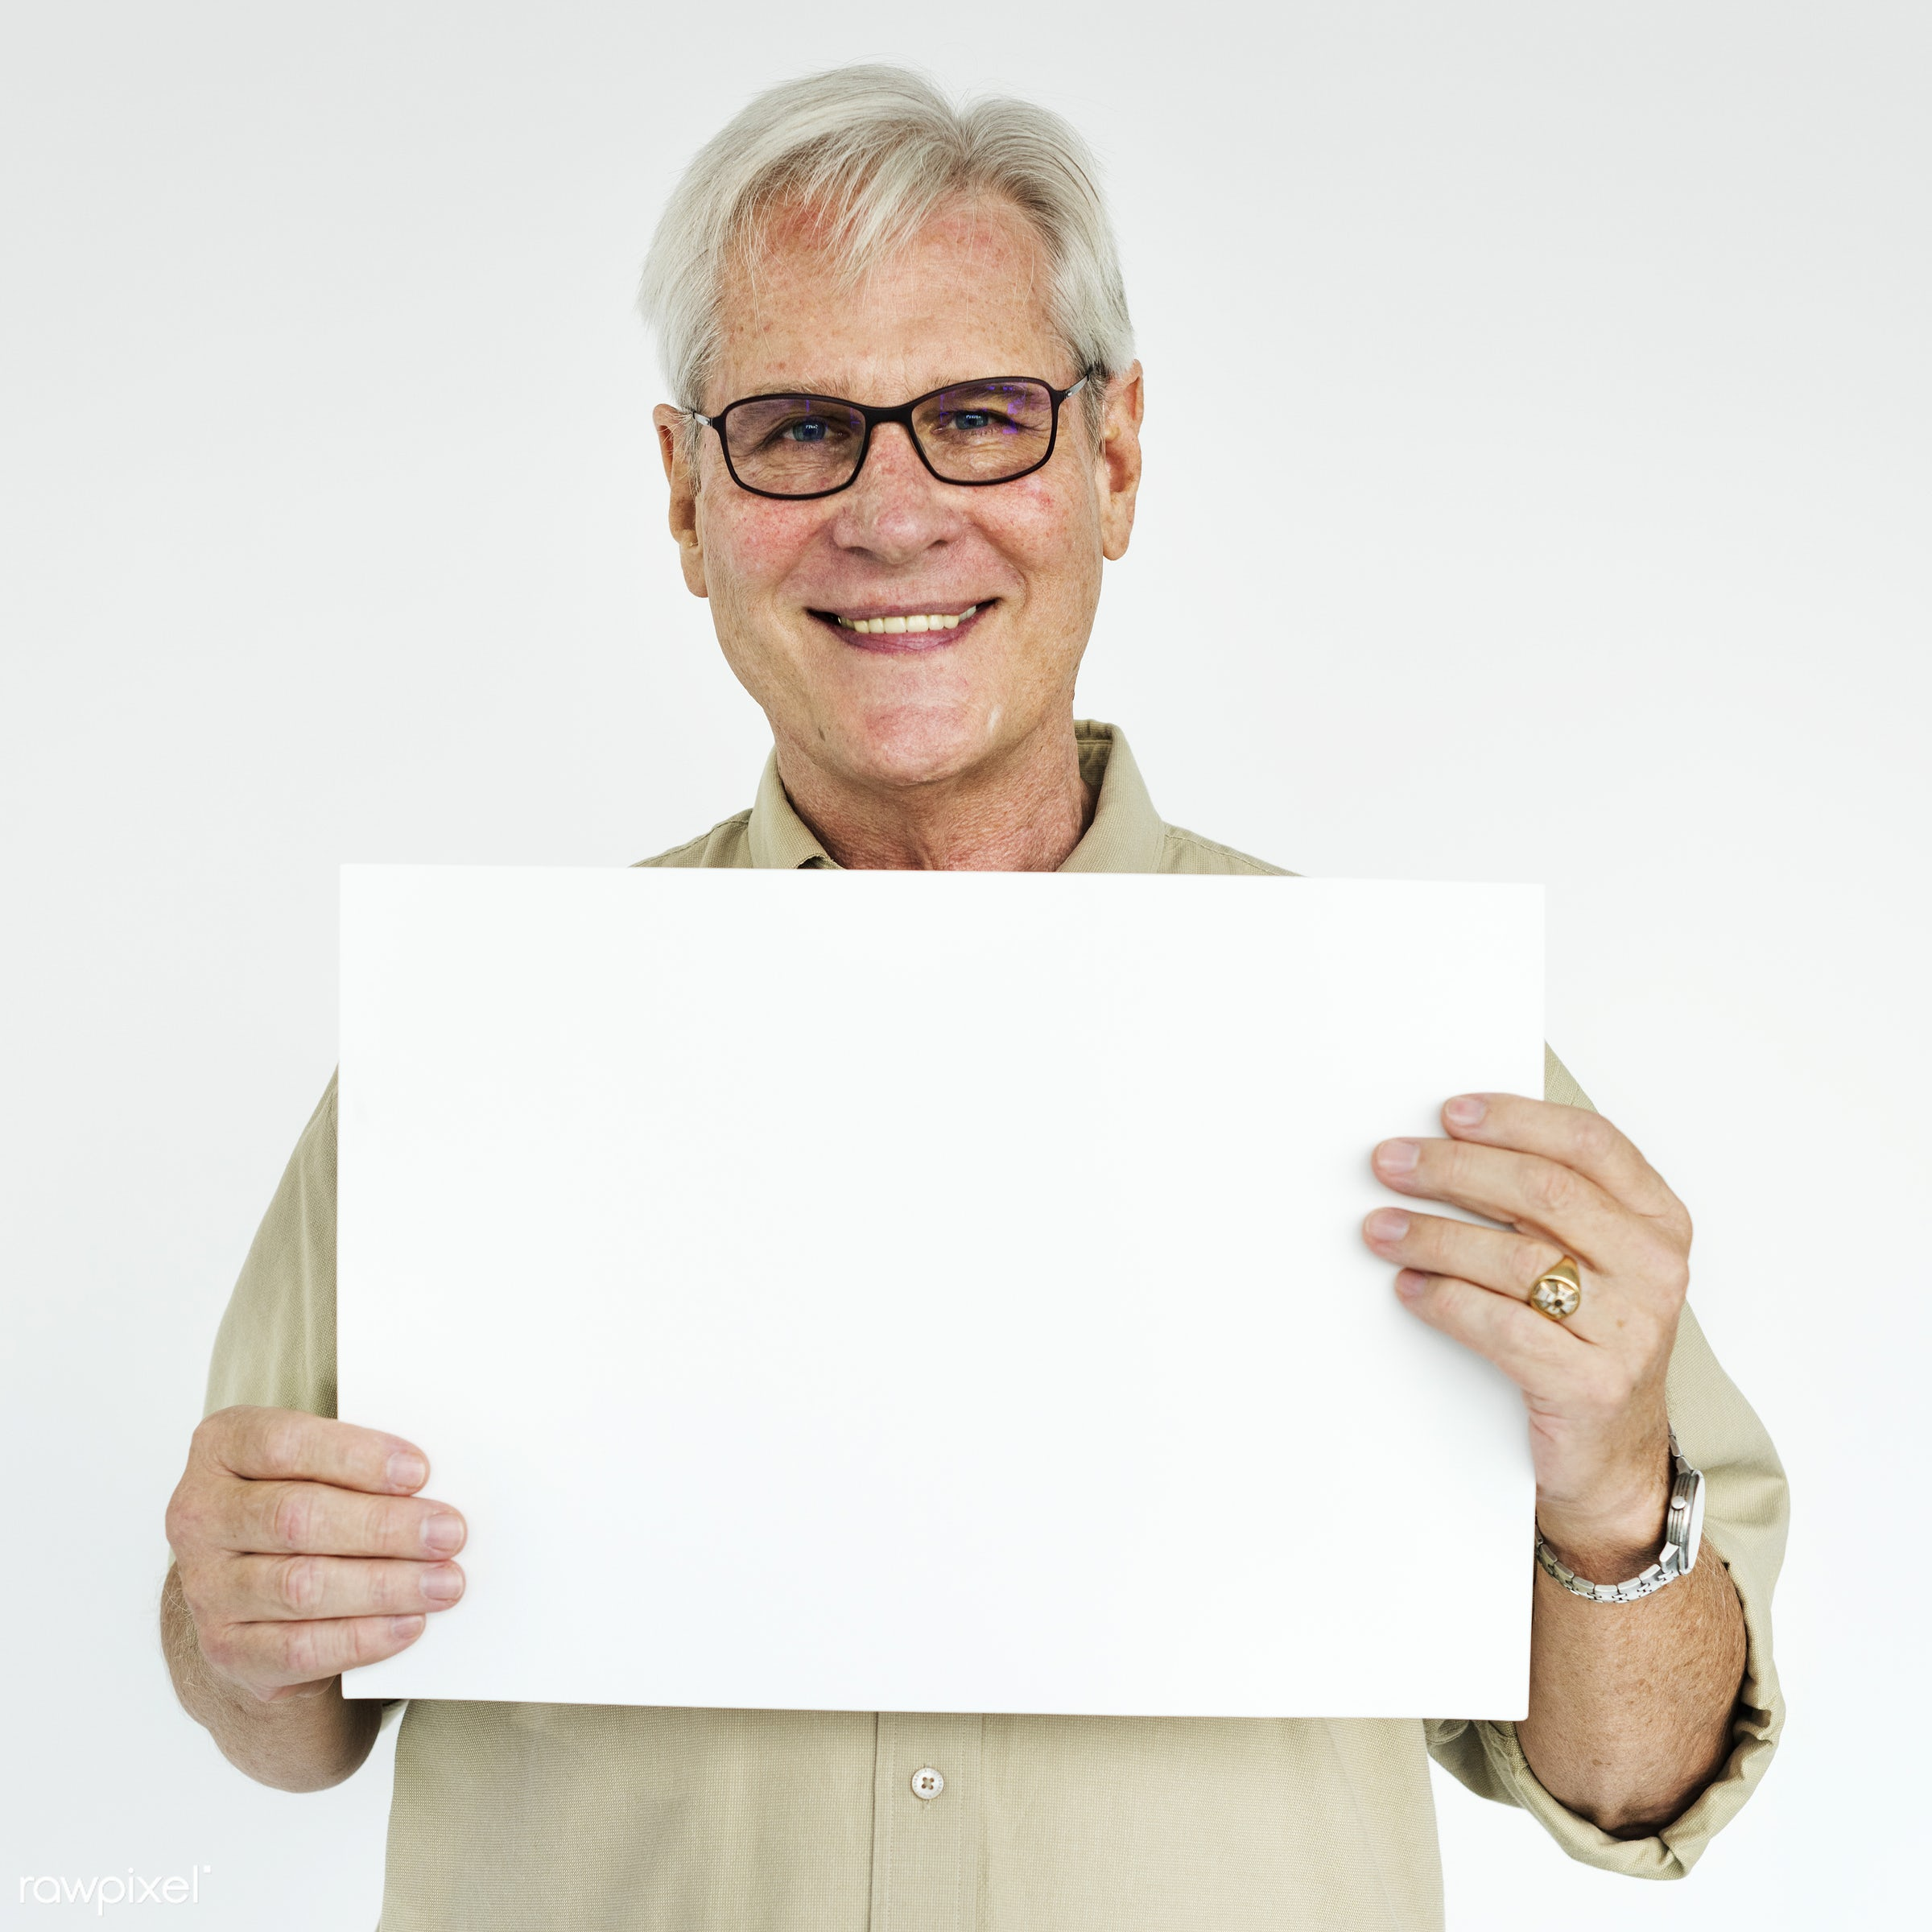 studio, person, holding, show, people, displaying, caucasian, placard, empty, positive, smile, cheerful, smiling, copy,...